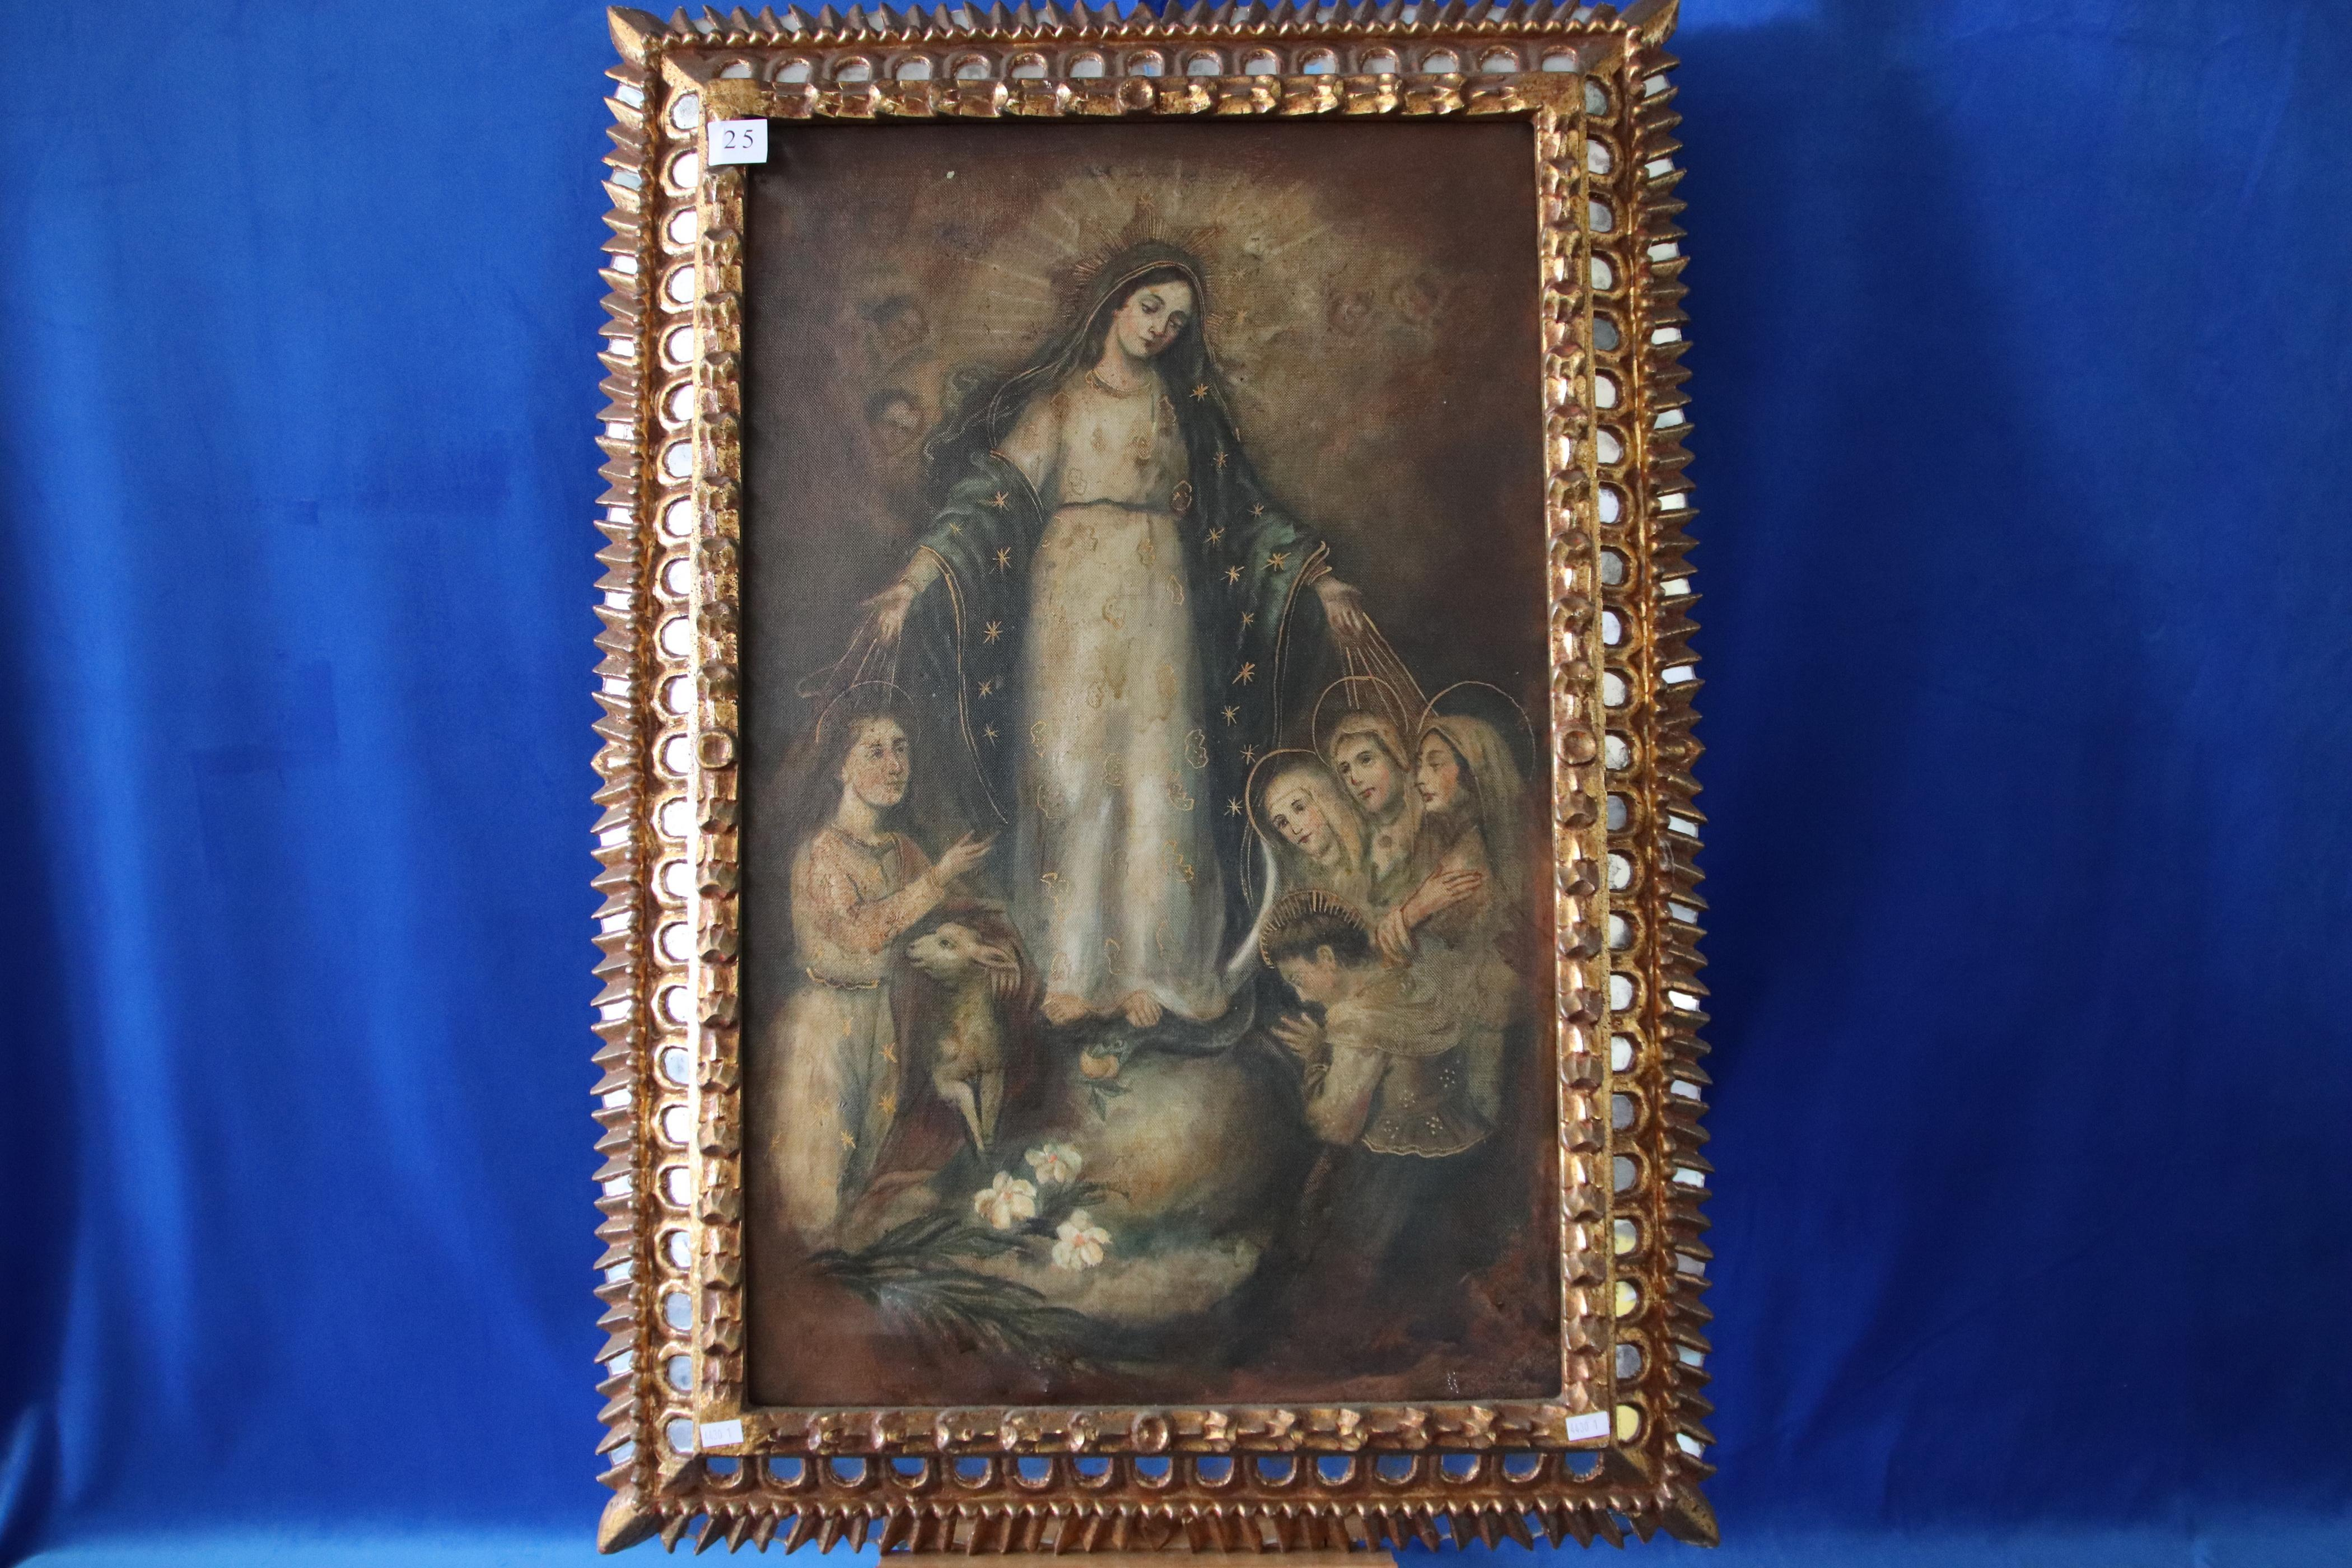 CUZCO SCHOOL, UNSIGNED, VIRGIN MARY SURROUND BY OTHER SAINTS INCL ST AGNES WITH LAMB, OIL ON CANVAS, 64 X 41 CM IN GOLD AND MIRROR FRAME (DAMAGES TO MIRROR)